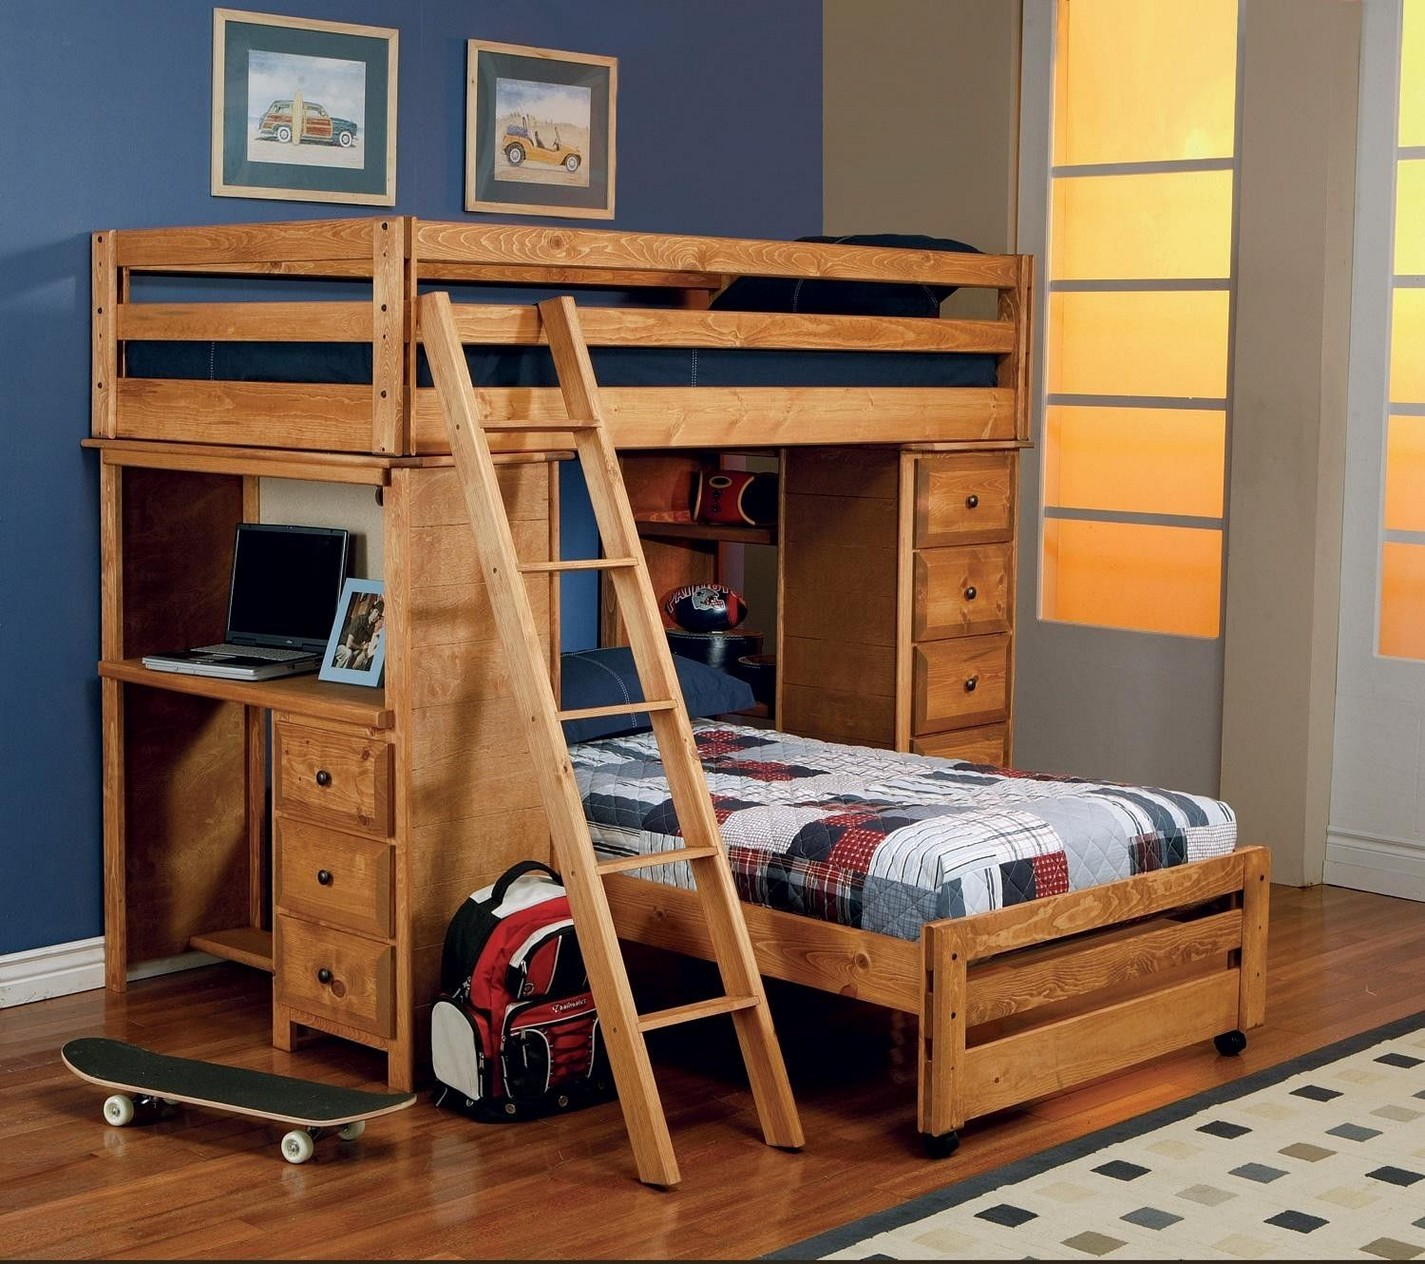 Bunk Beds for Small Rooms | Bunk Bed Building Plans | Loft Bed with Slide Plans